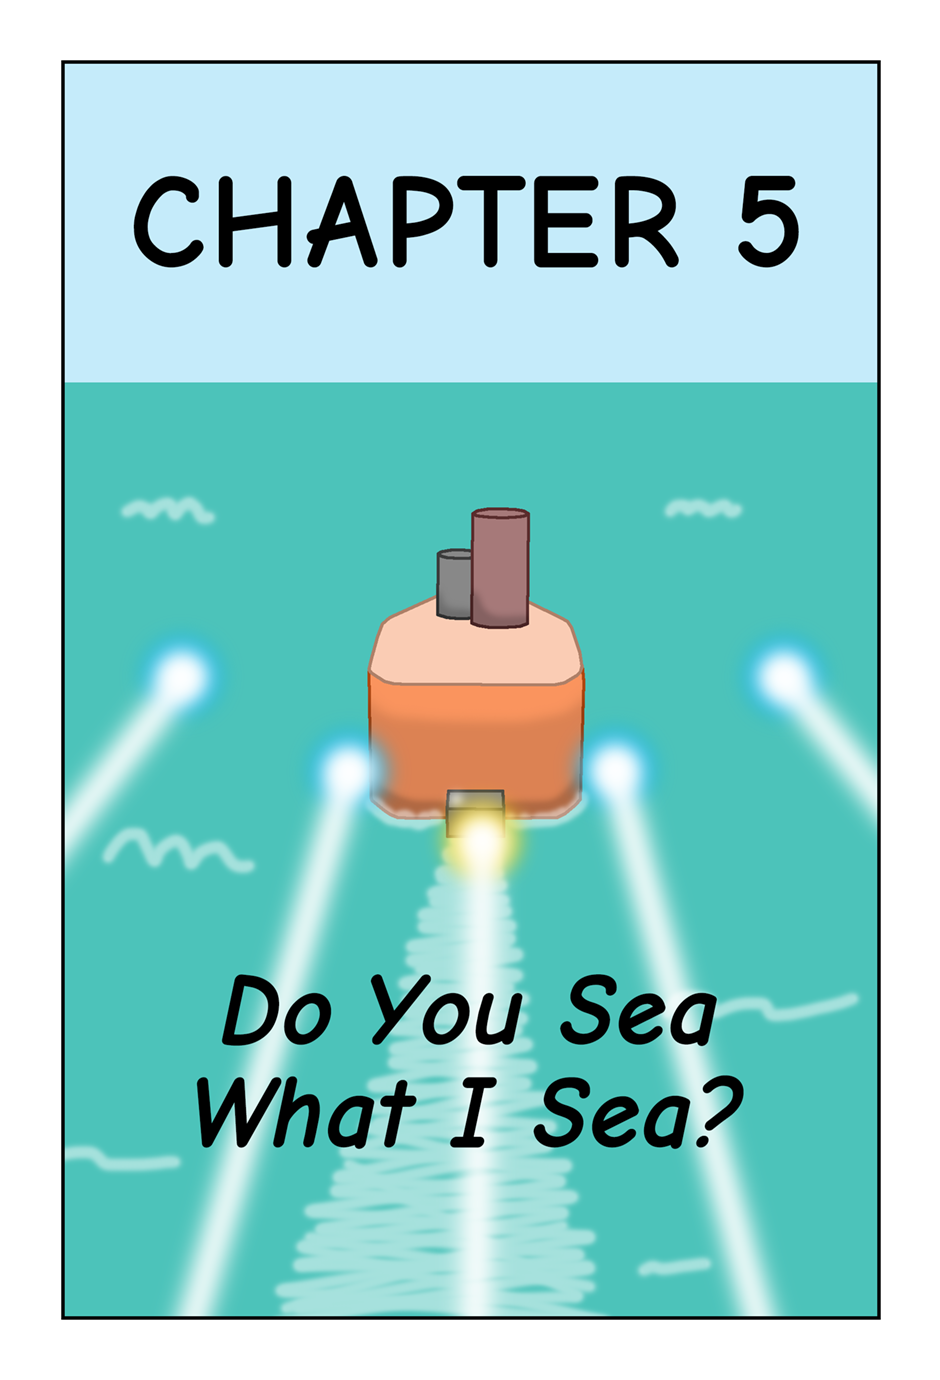 CHAPTER 5 - DO YOU SEA WHAT I SEA?